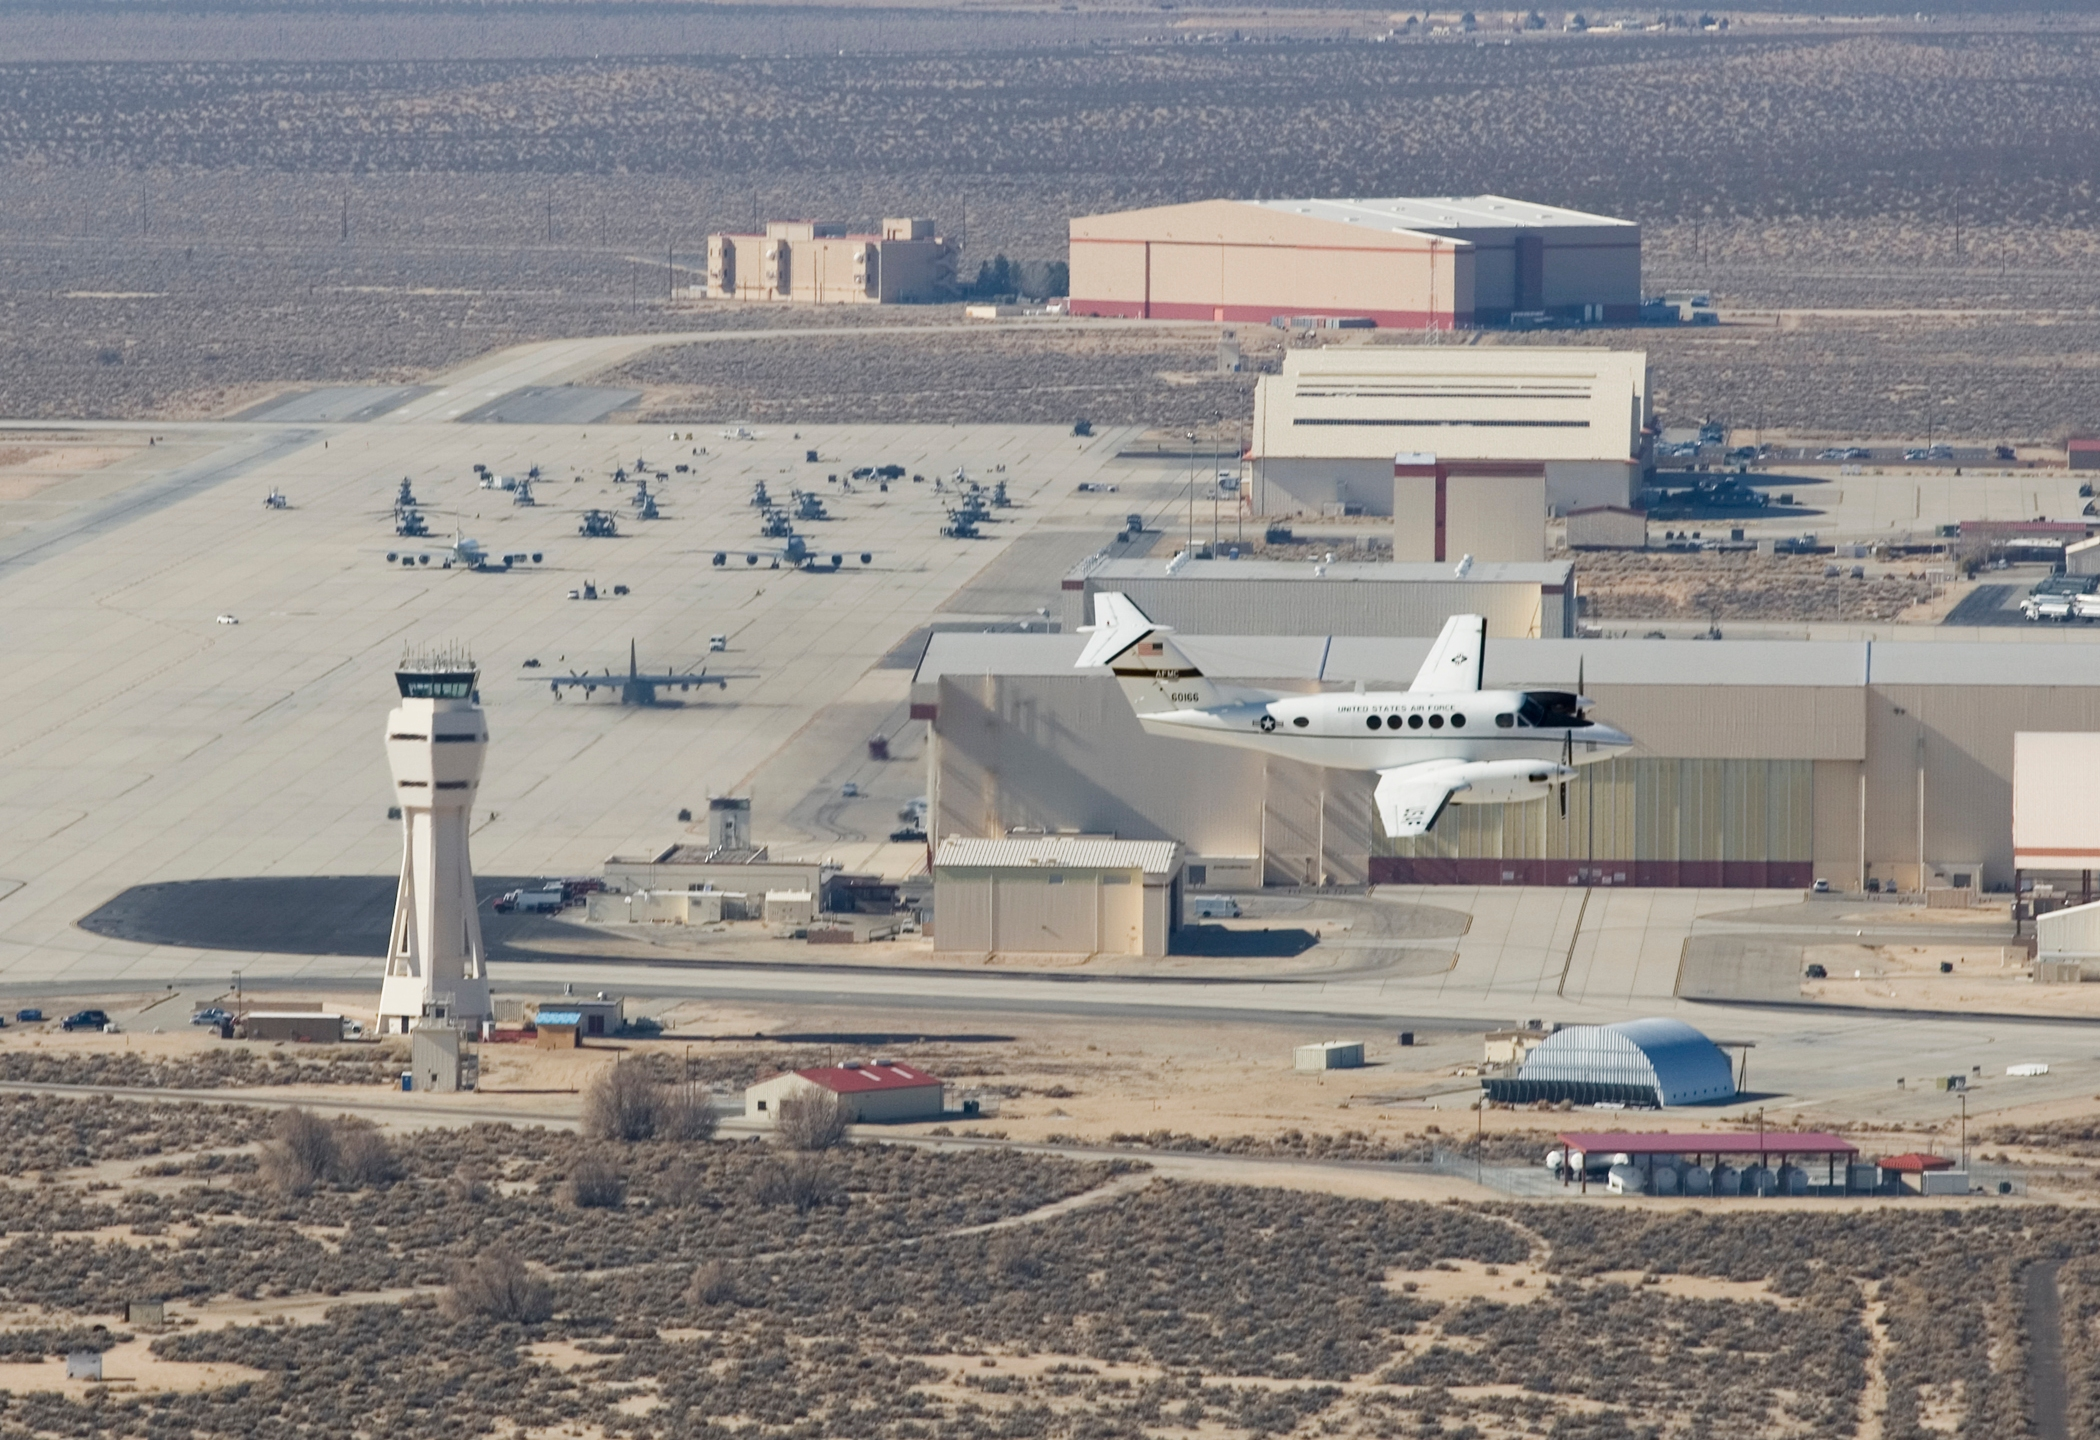 Edwards Air Force Base in Kern County is seen a file photo. (Credit: Bobbi Zapka / U.S. Air Force)